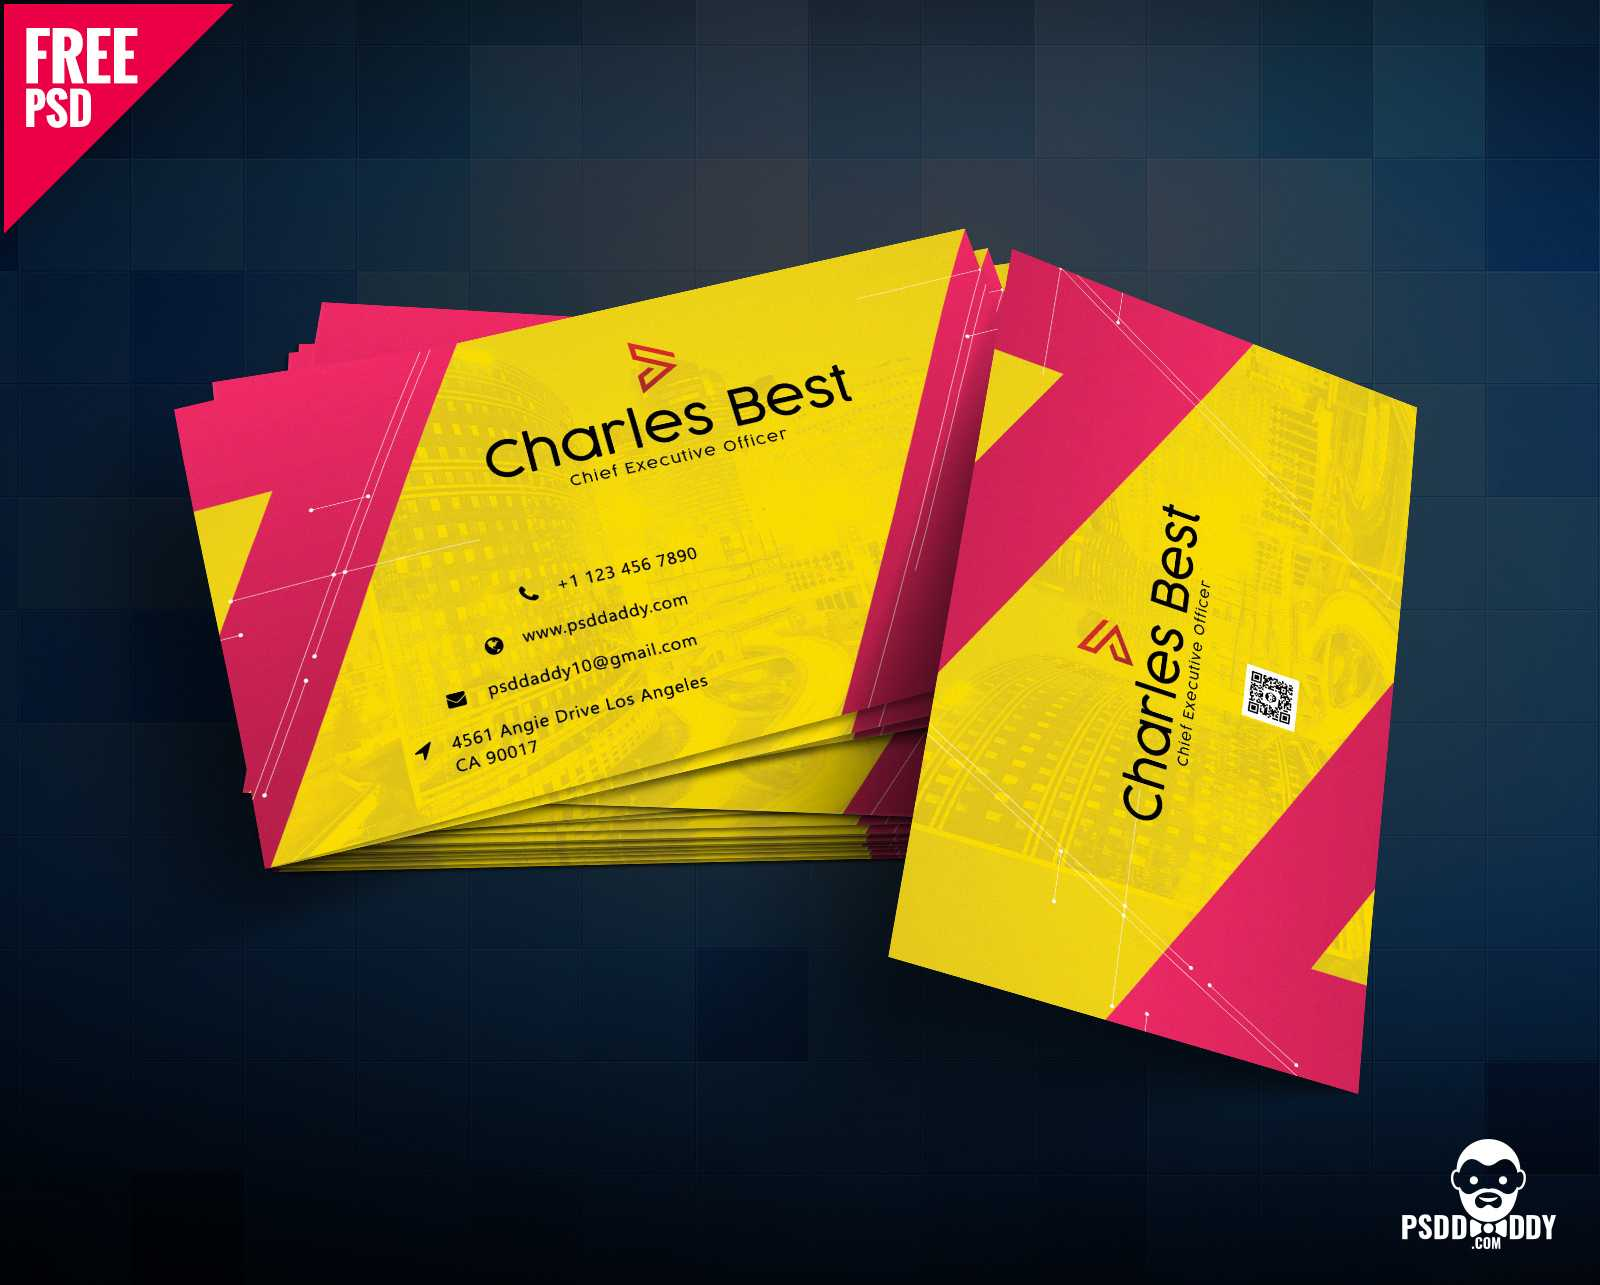 Download] Creative Business Card Free Psd | Psddaddy Inside Psd Visiting Card Templates